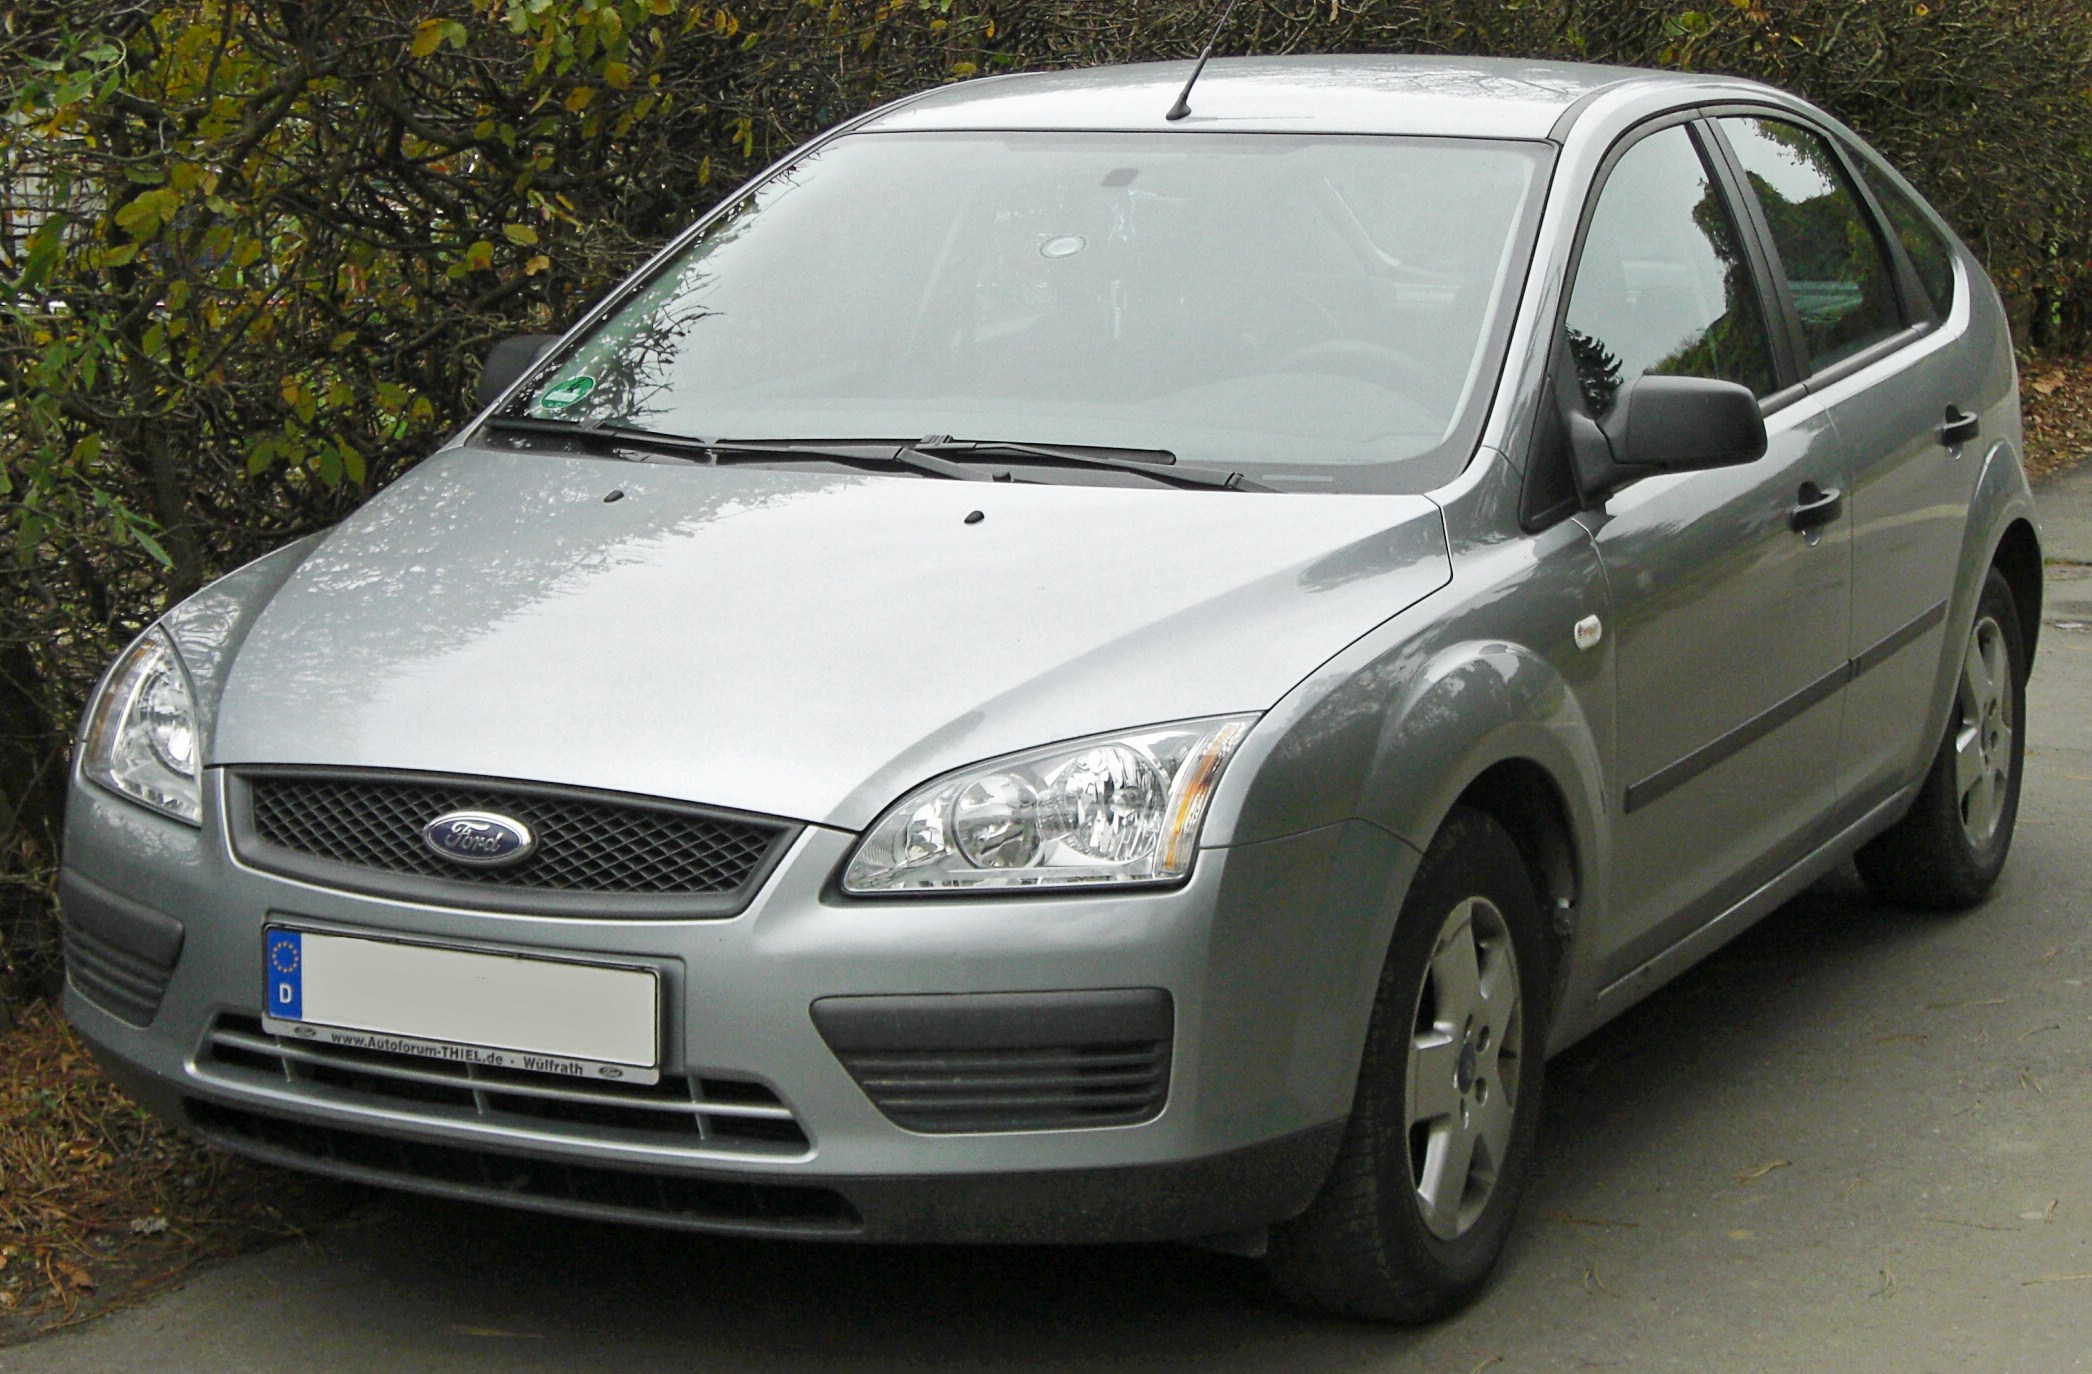 2004 ford mondeo iii hatchback pictures information and. Black Bedroom Furniture Sets. Home Design Ideas